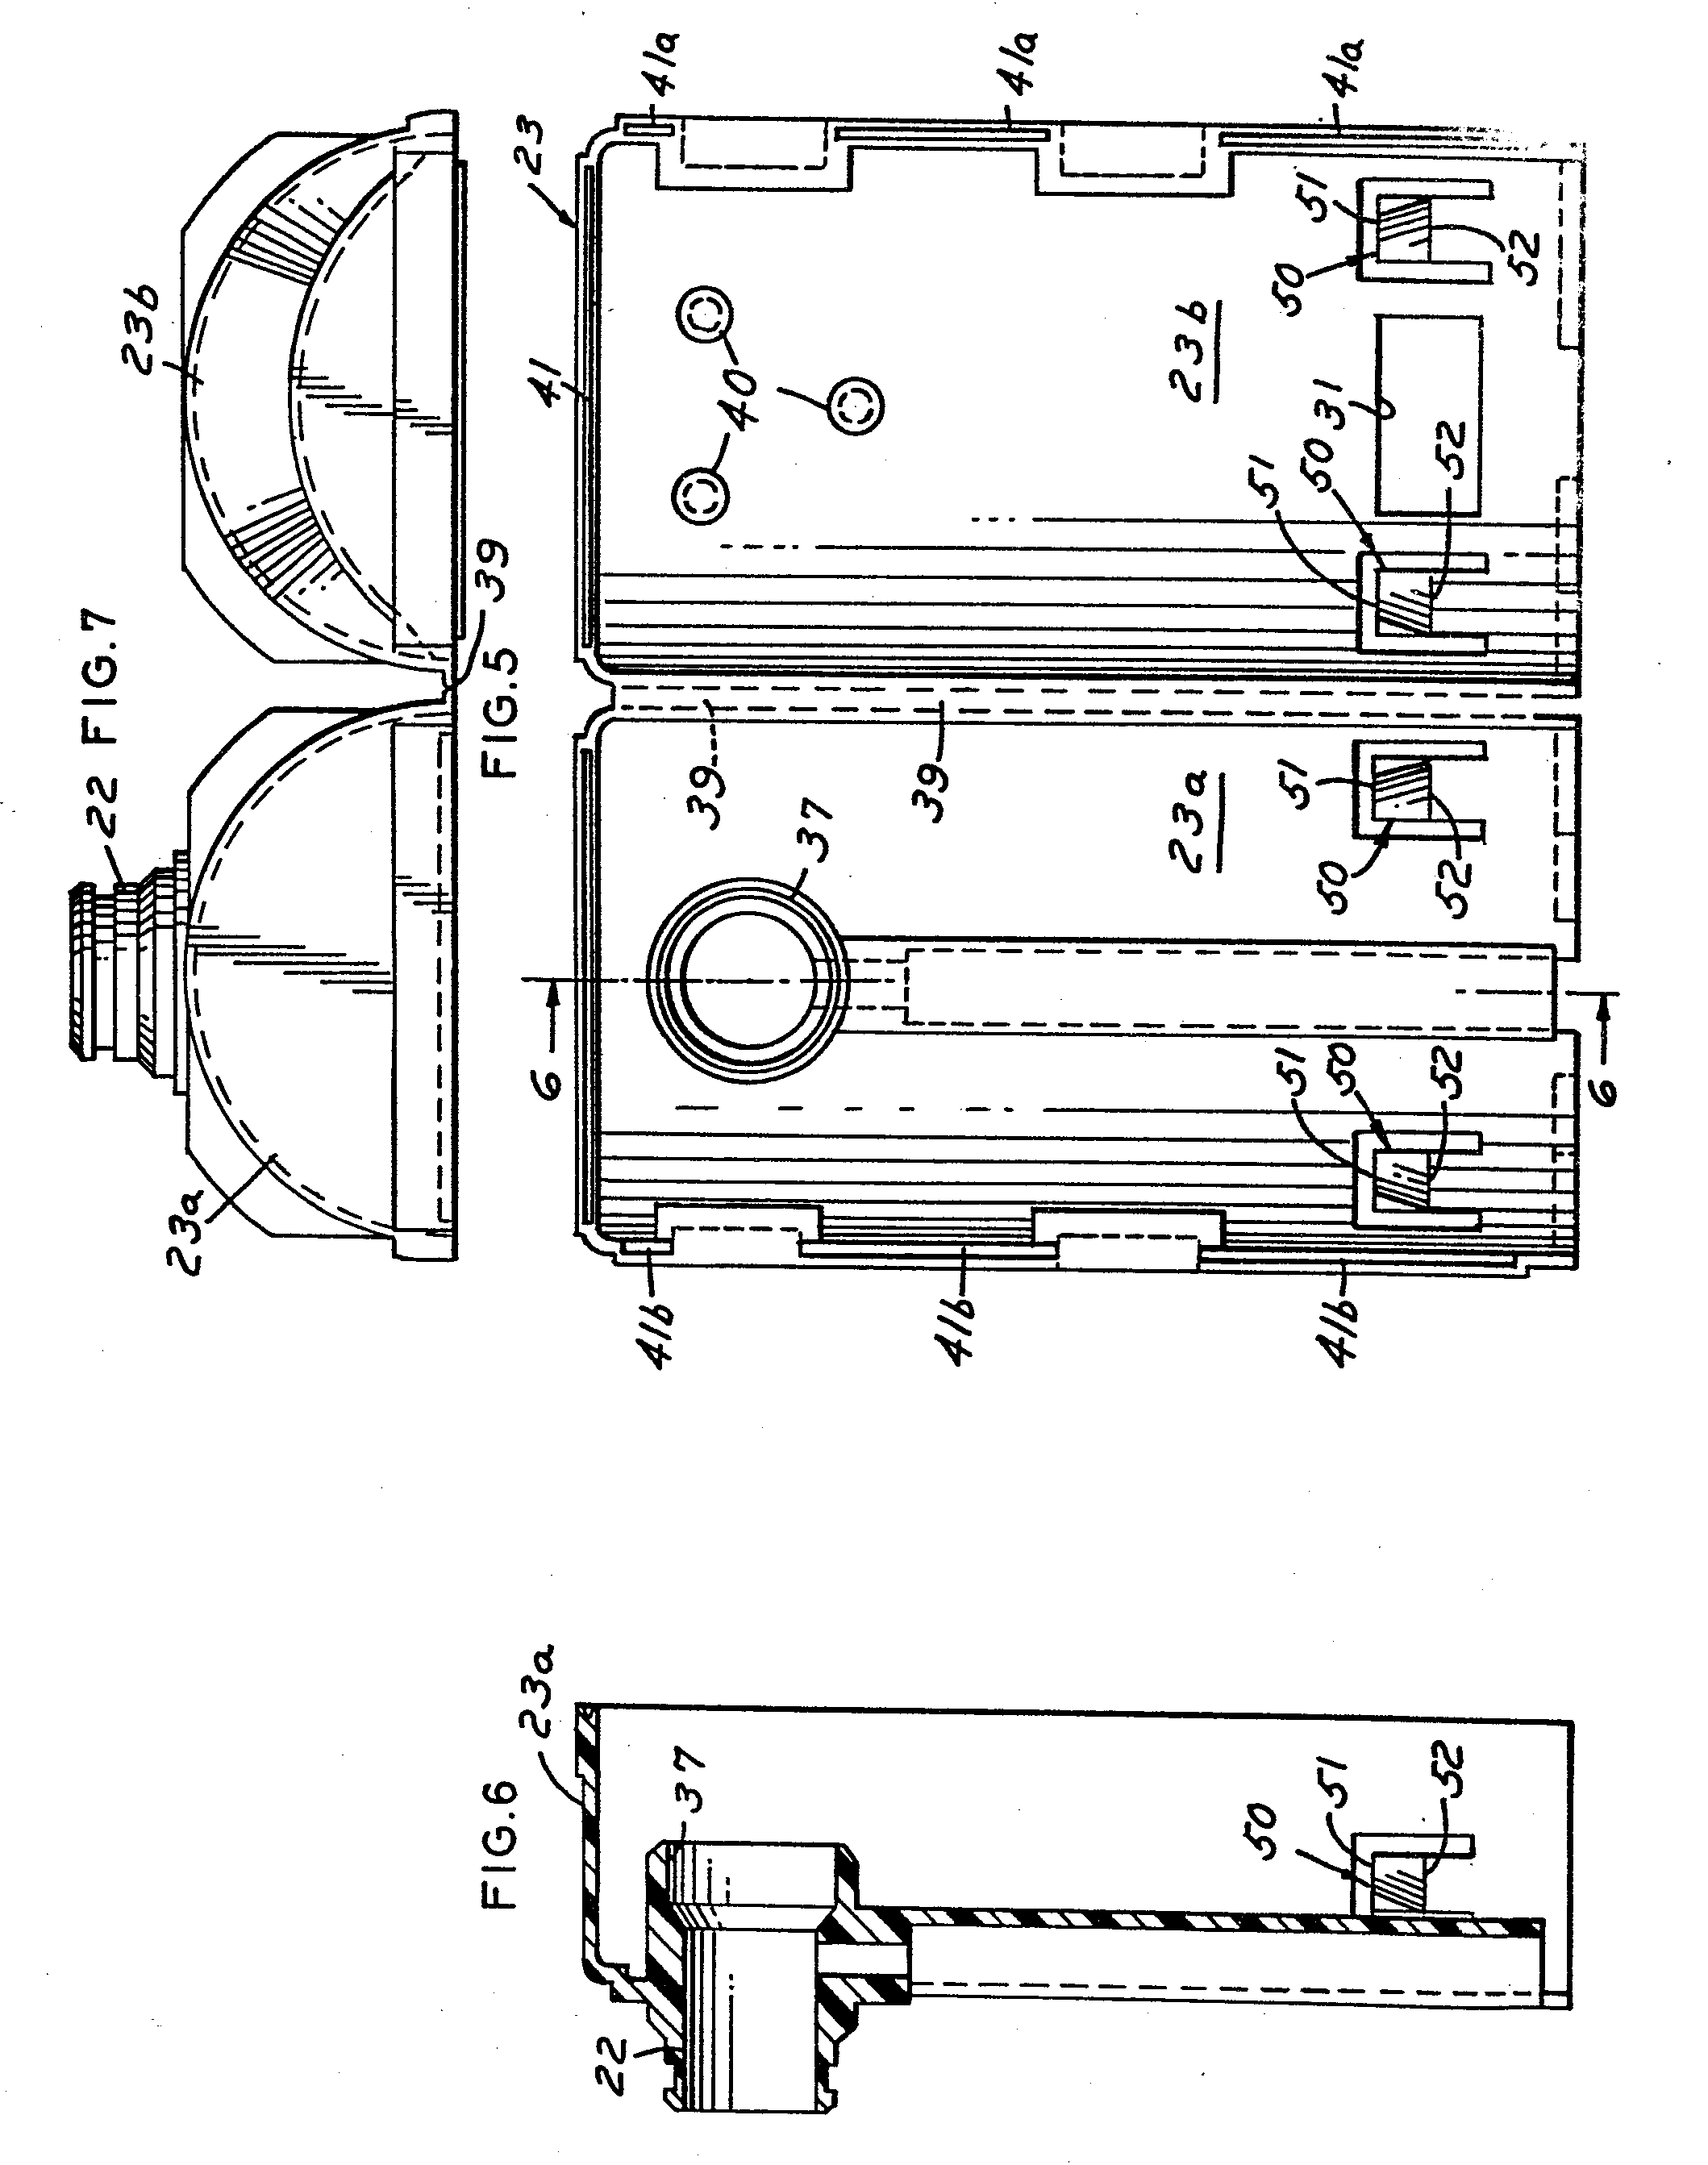 patent ep0142095a2 - accumulator-dehydrator assembly for an air conditioning system